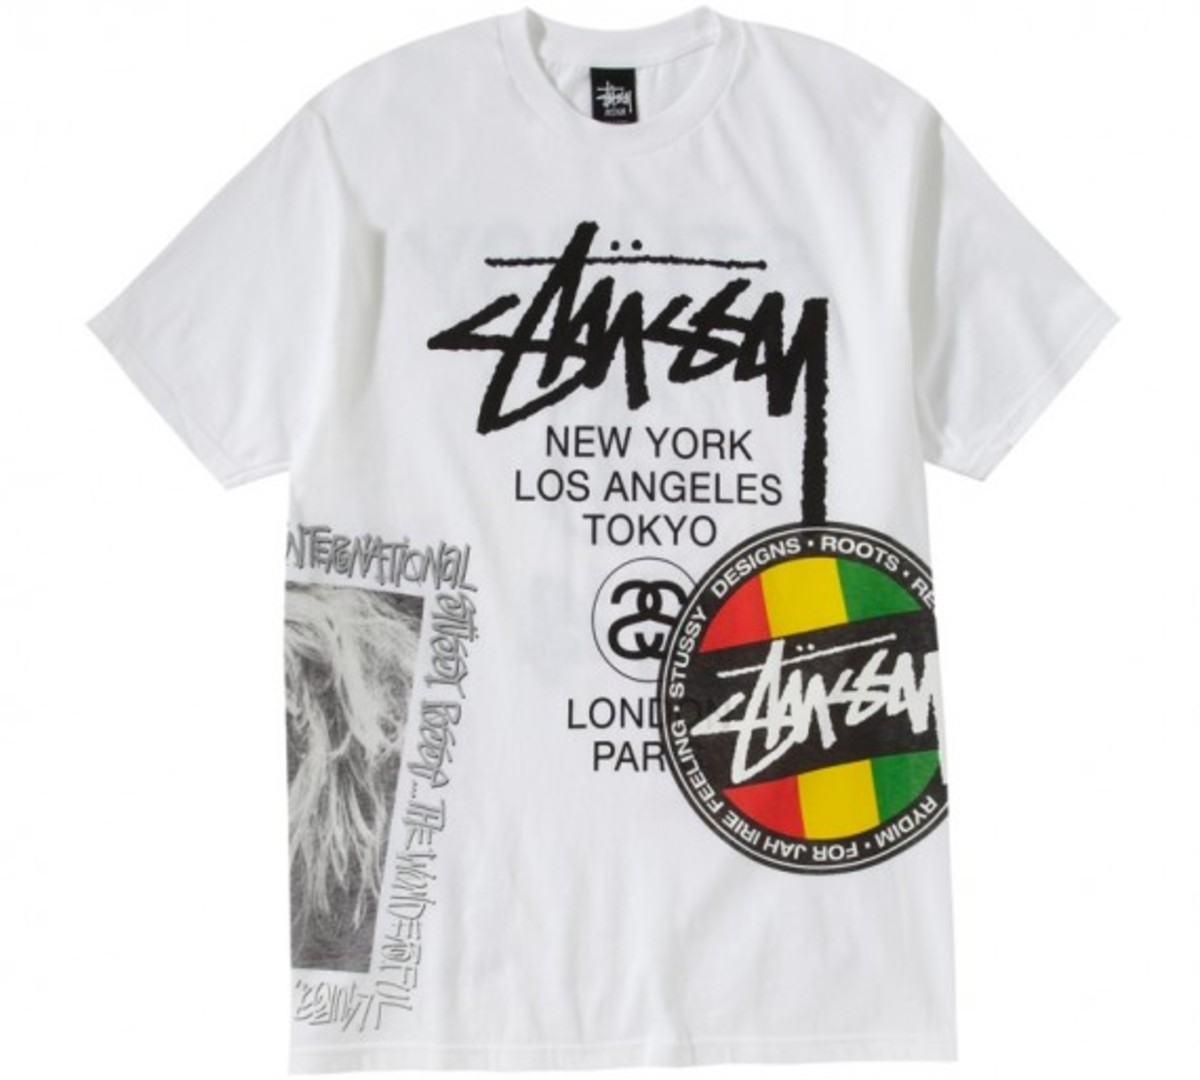 stussy-summer-2012-t-shirt-collection-08